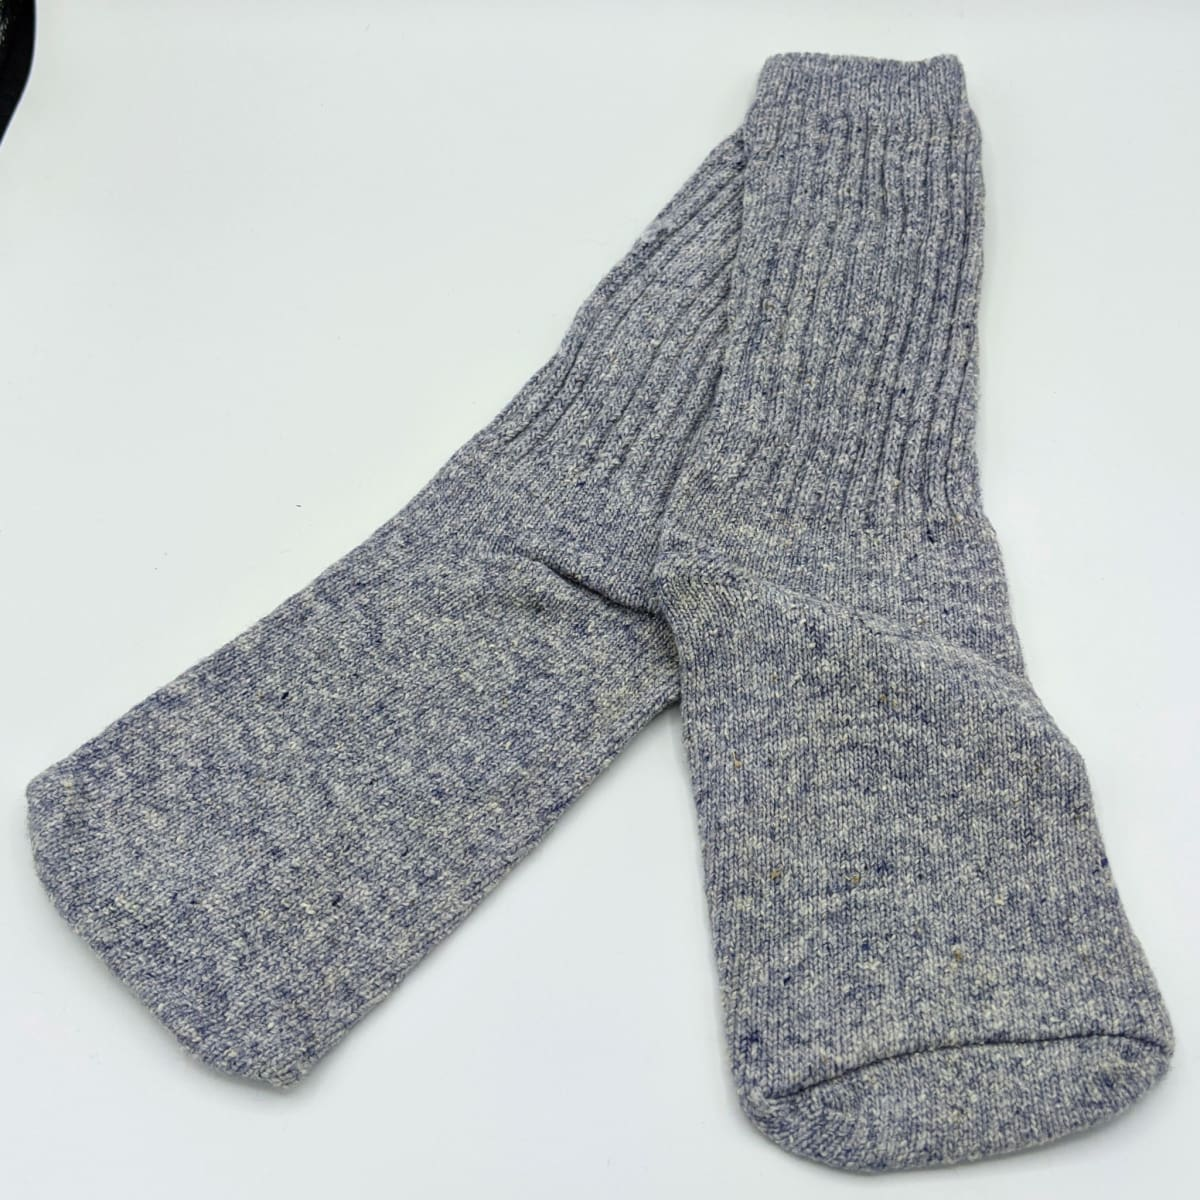 Ladies Socks - Machine Knit - Grey/Blue - Handmade